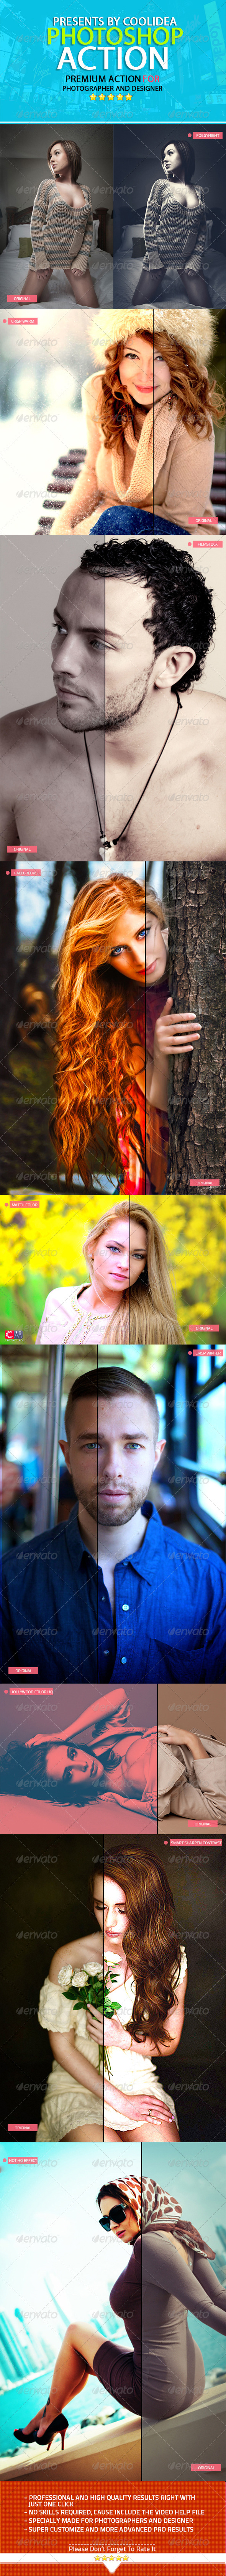 GraphicRiver Glamour & Fashion HQ Photoshop Action Pack 7771132